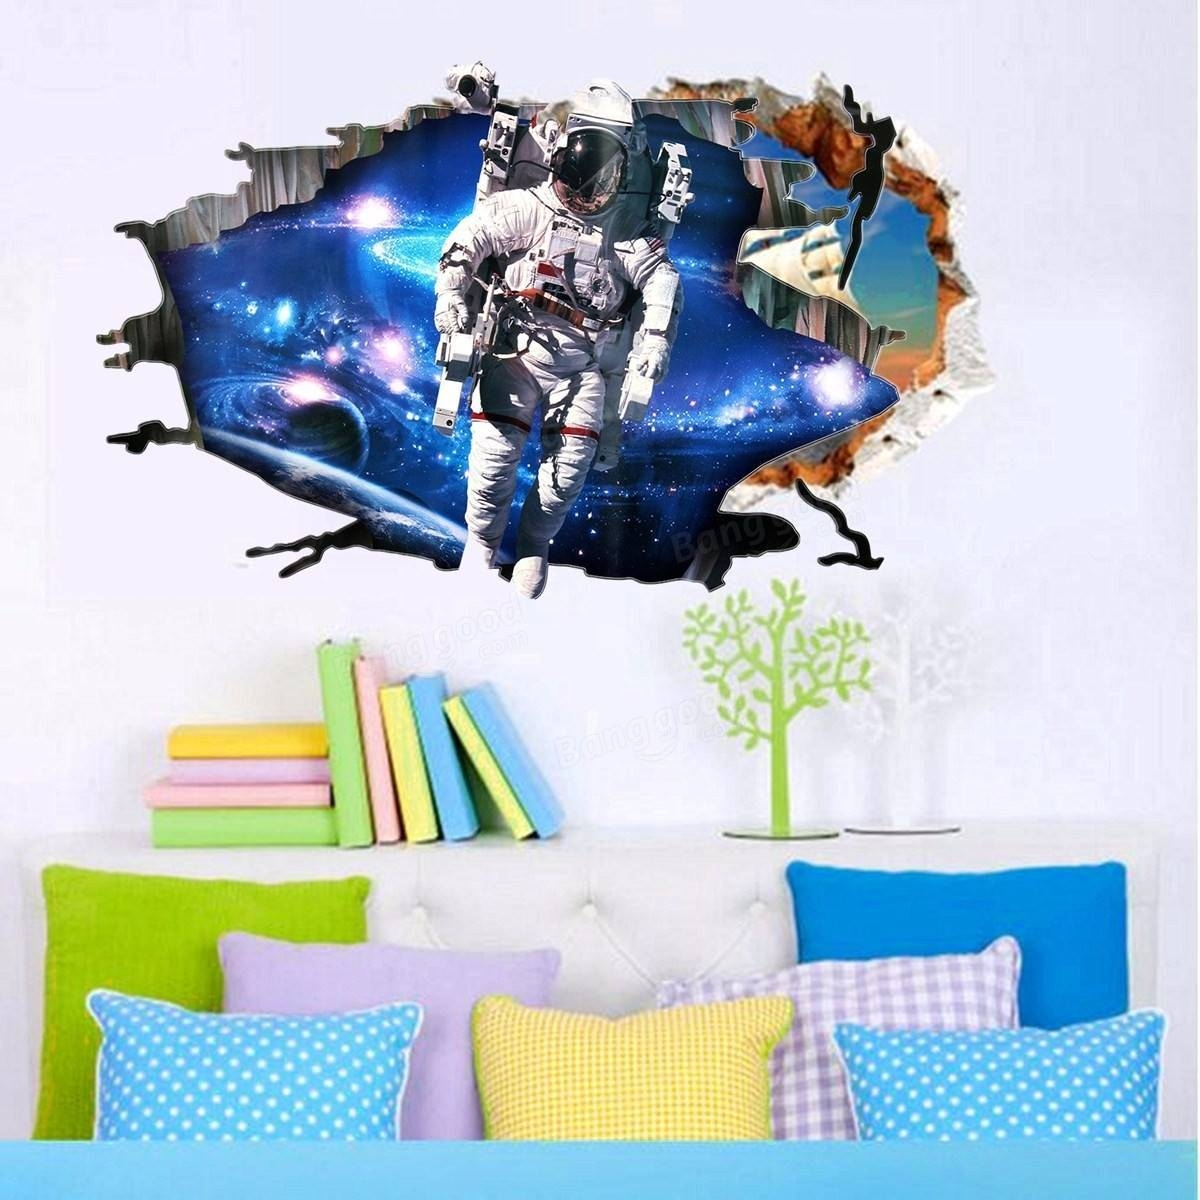 3D Wall Stickers Wallpaper Space Astronauts Decor Kids Room Decal Inside Newest Astronaut 3D Wall Art (View 9 of 20)